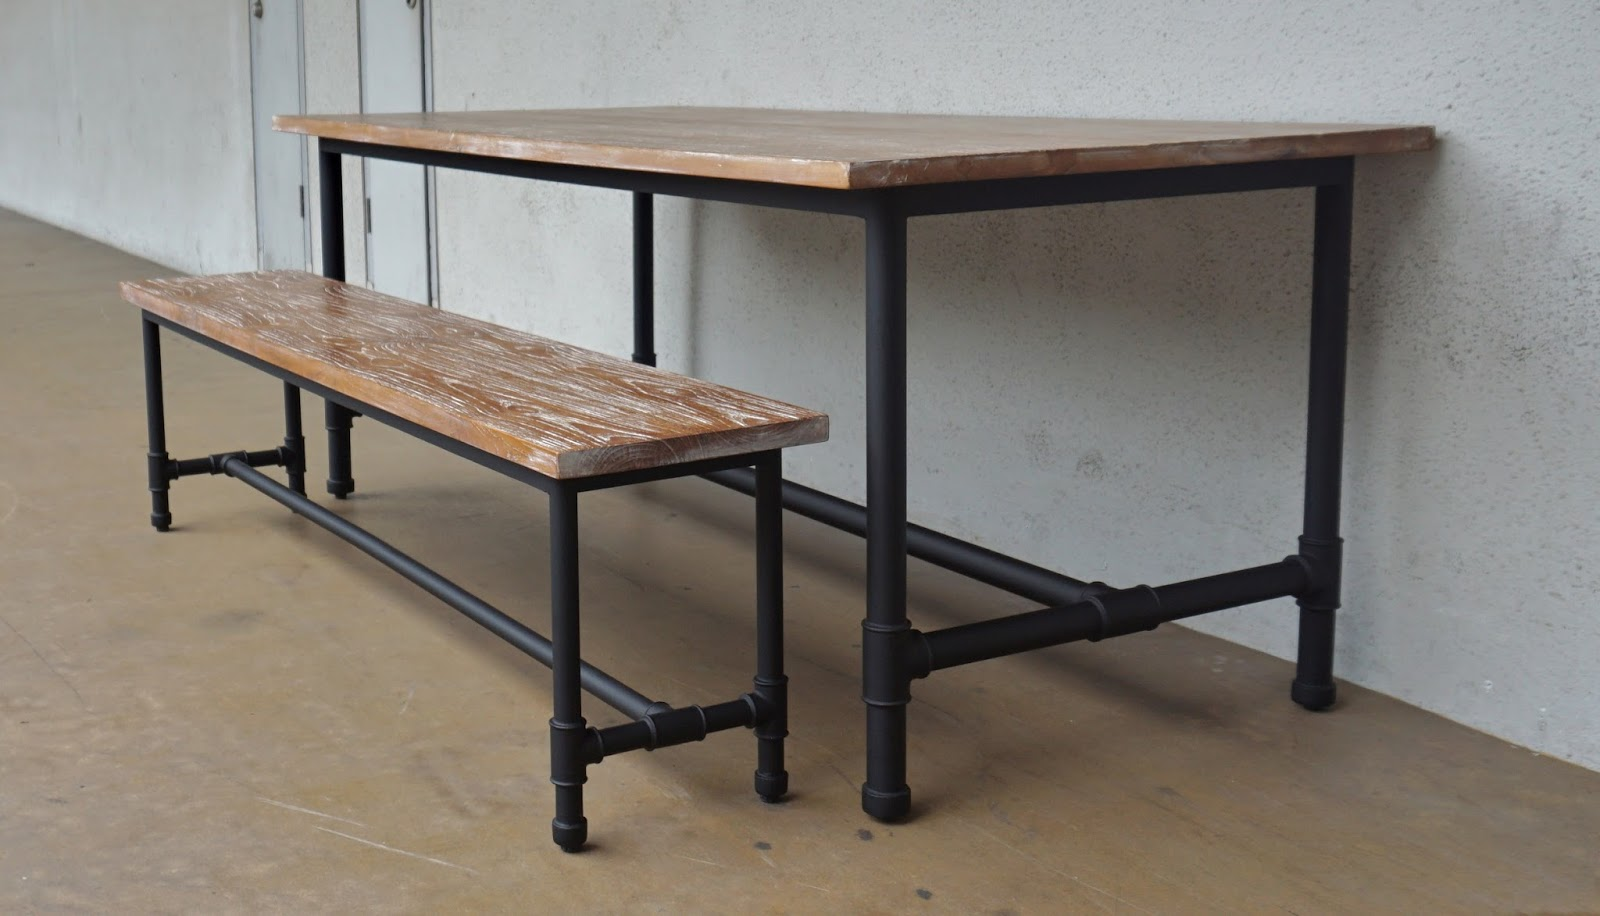 INDUSTRIAL FURNITURE II: DINING TABLE | Second Charm